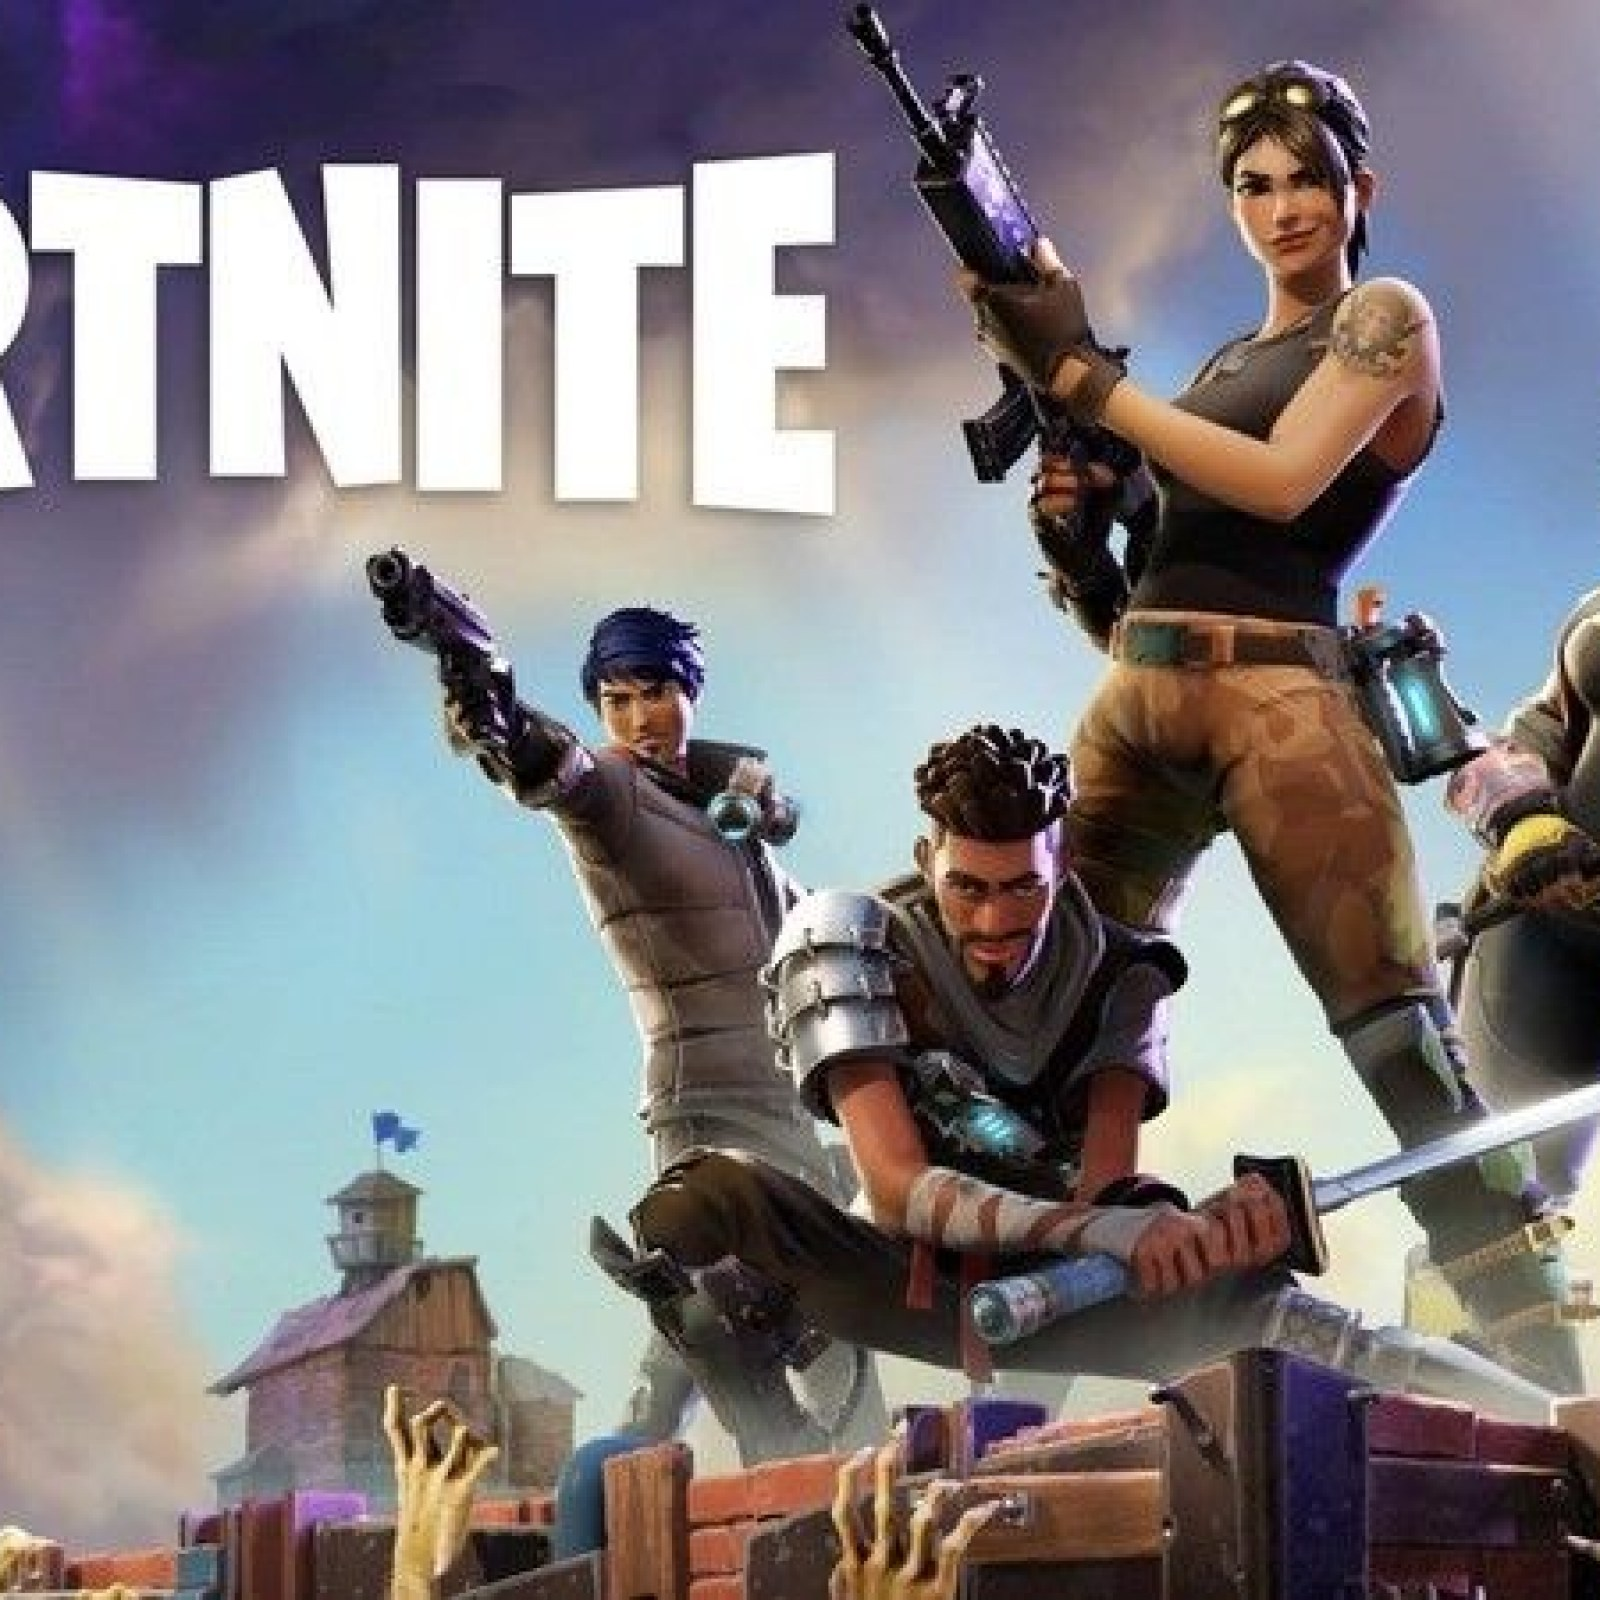 Fortnite' Down? When Will the Game Come Back Online? [UPDATED]